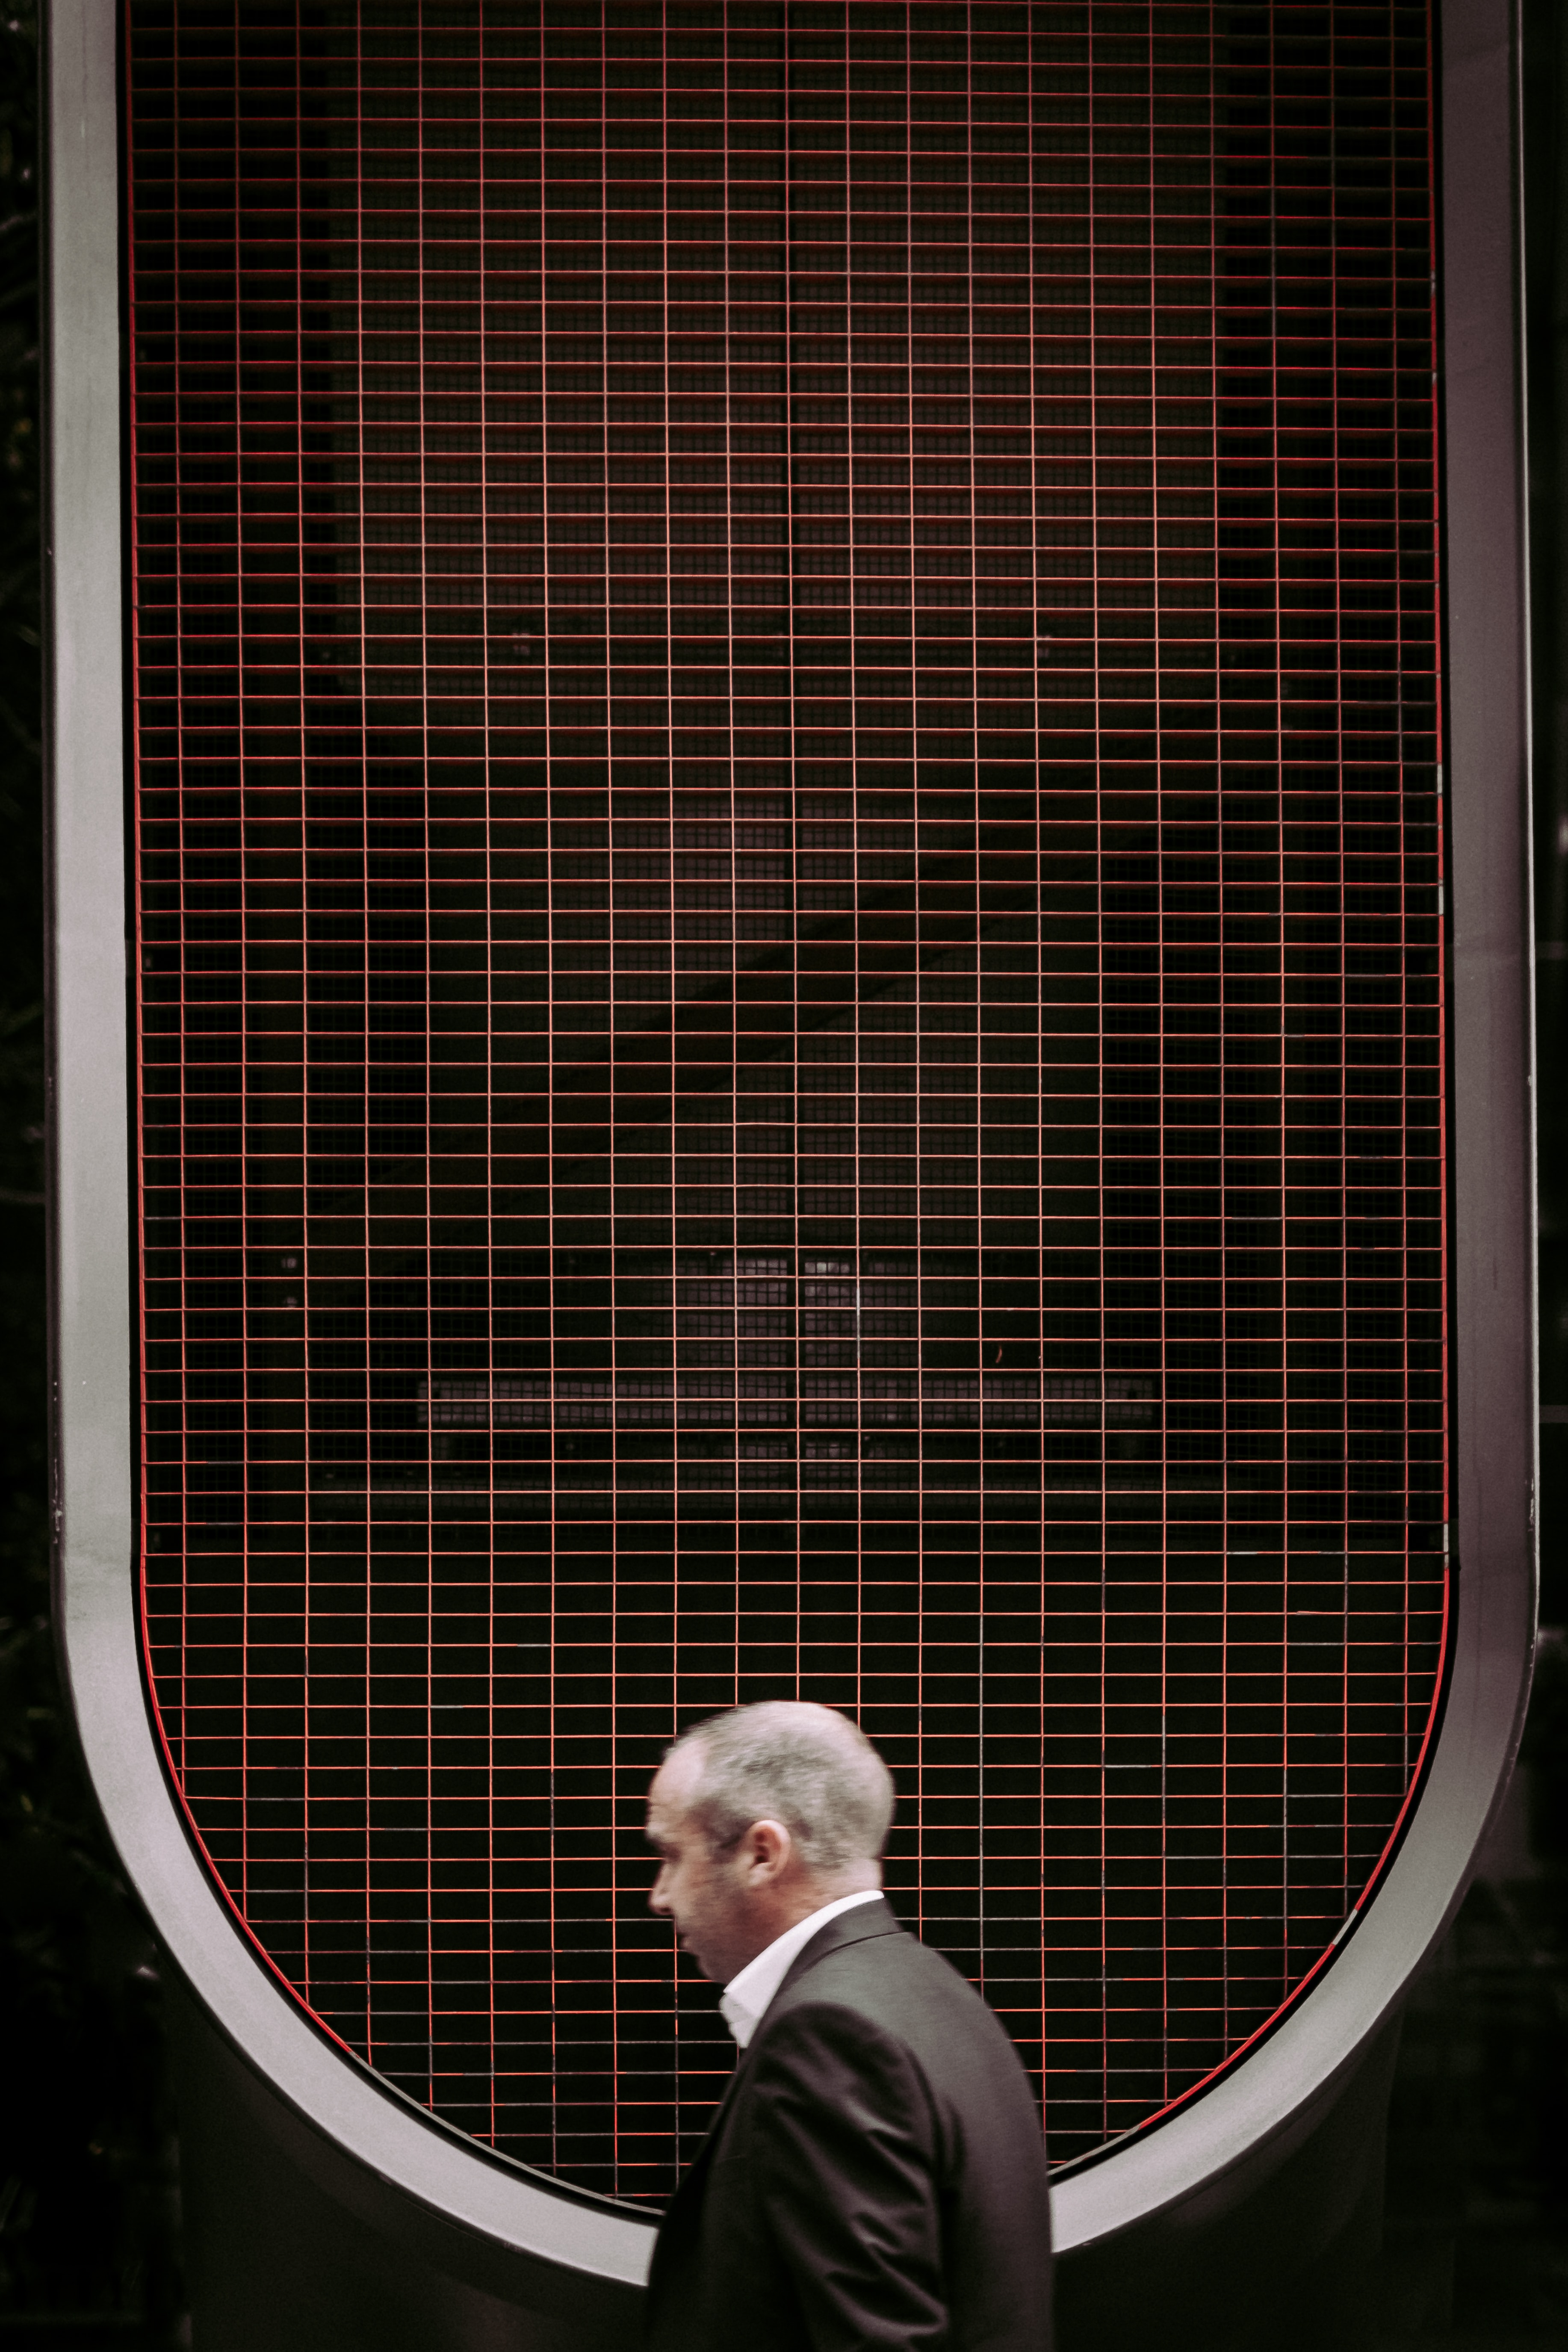 A low-angle shot of a man in a black suit under a grid on the roof